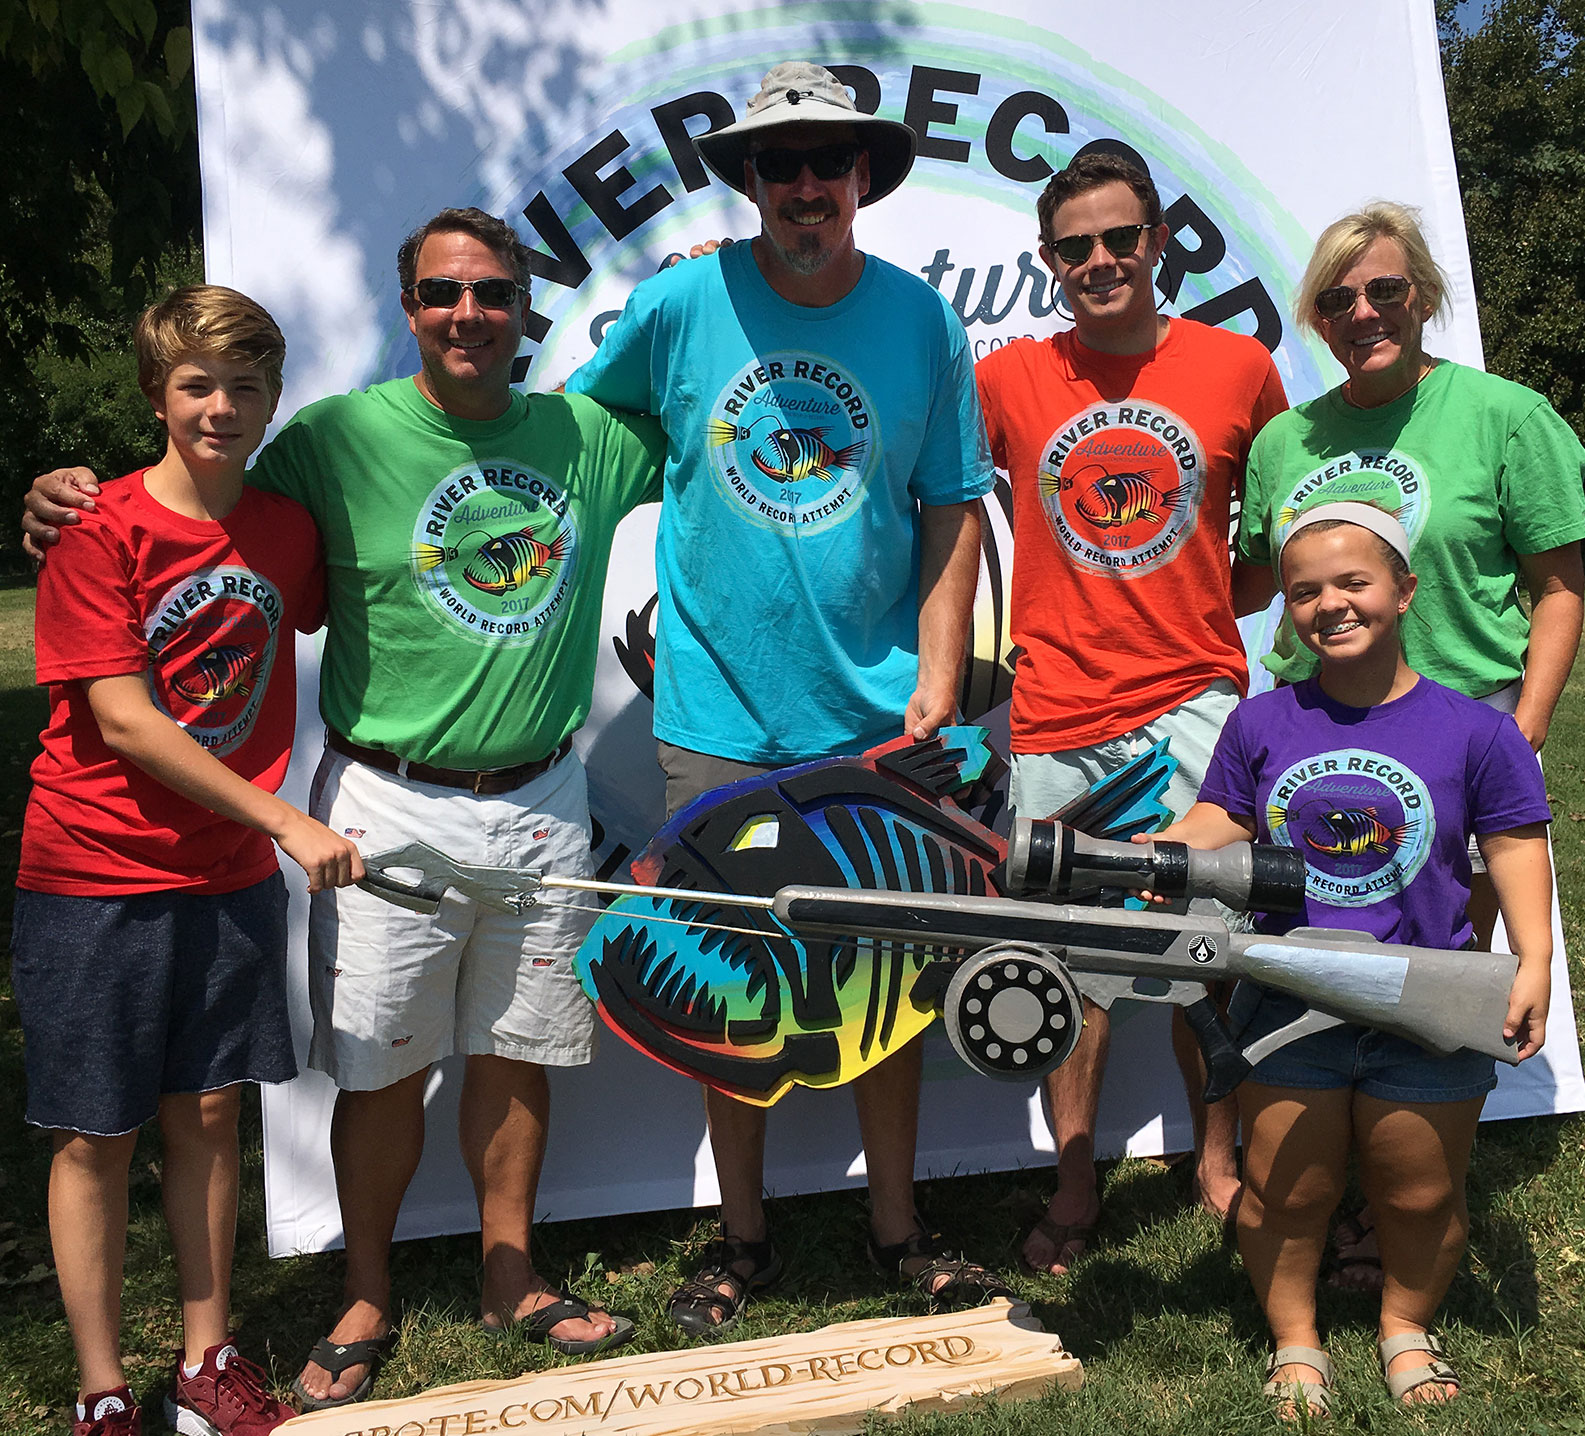 Marc Phelps with the Grote family during the River Record Adventure kickoff party in Madison, Indiana